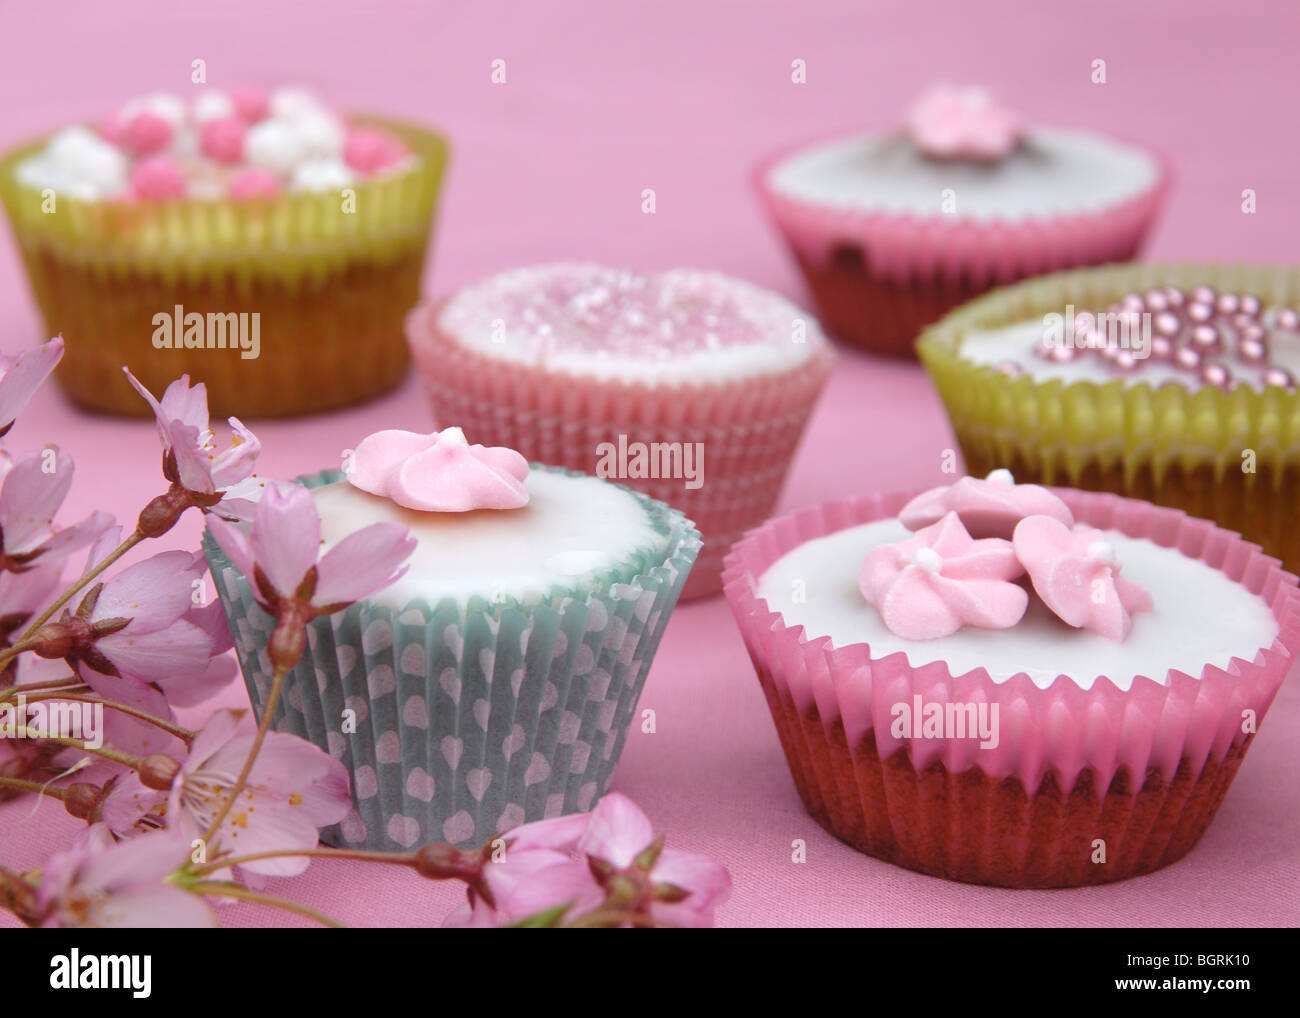 Close Up Of Six Pretty Decorated Cupcakes On A Pink